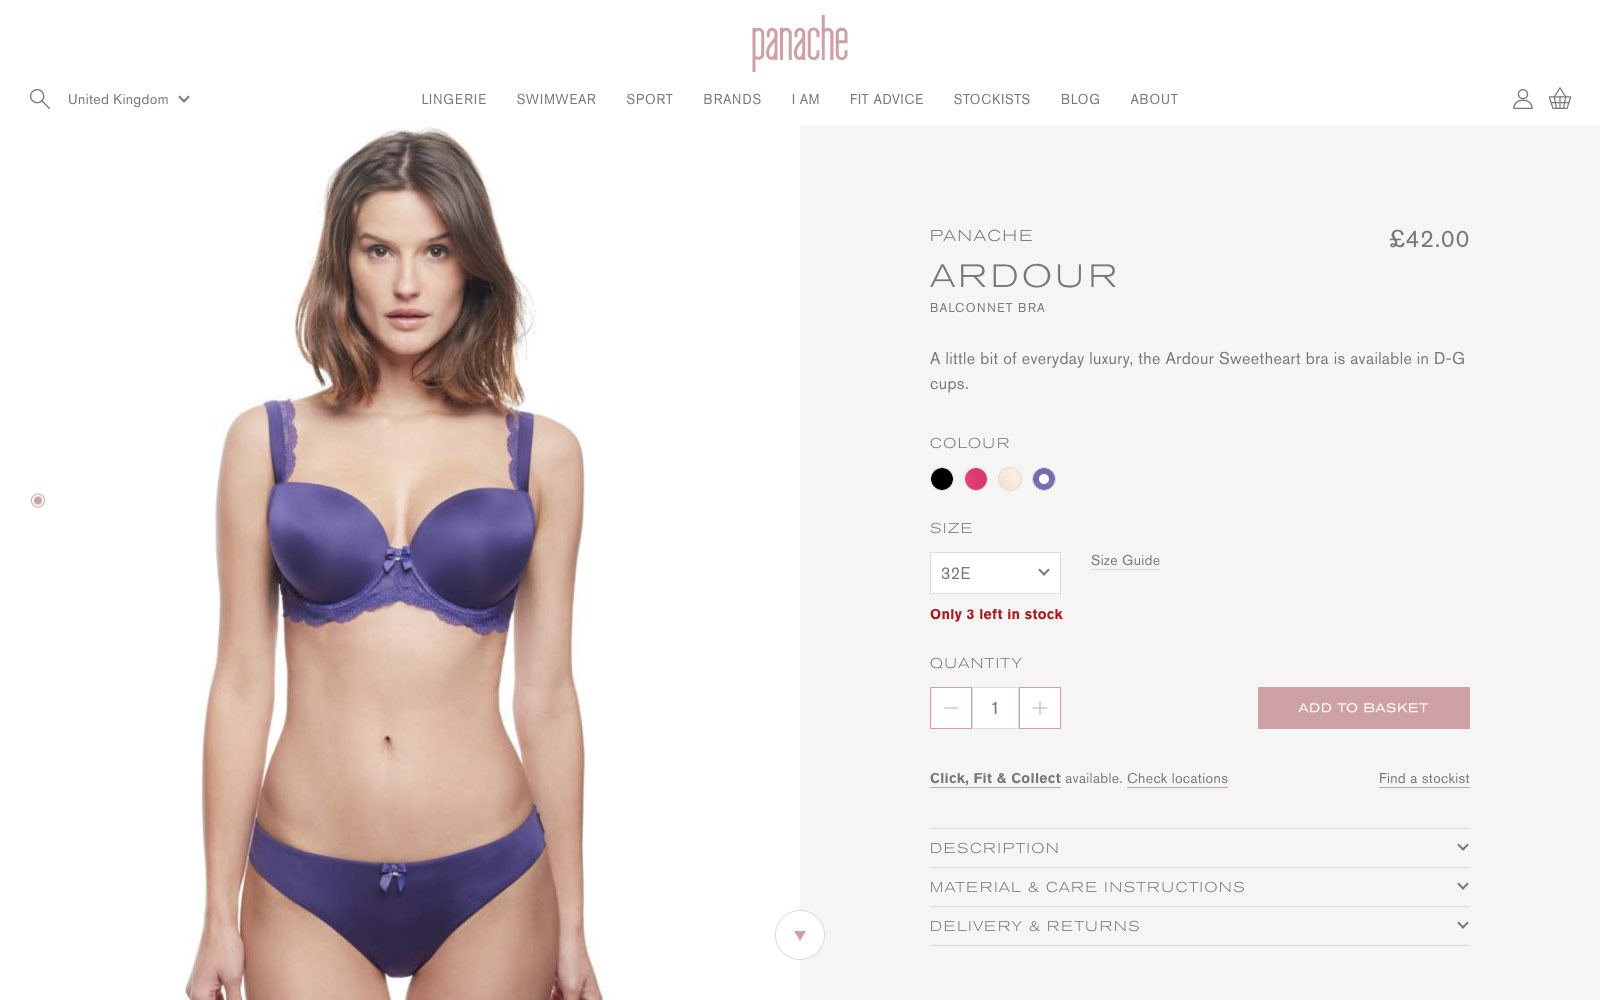 Panache website product view